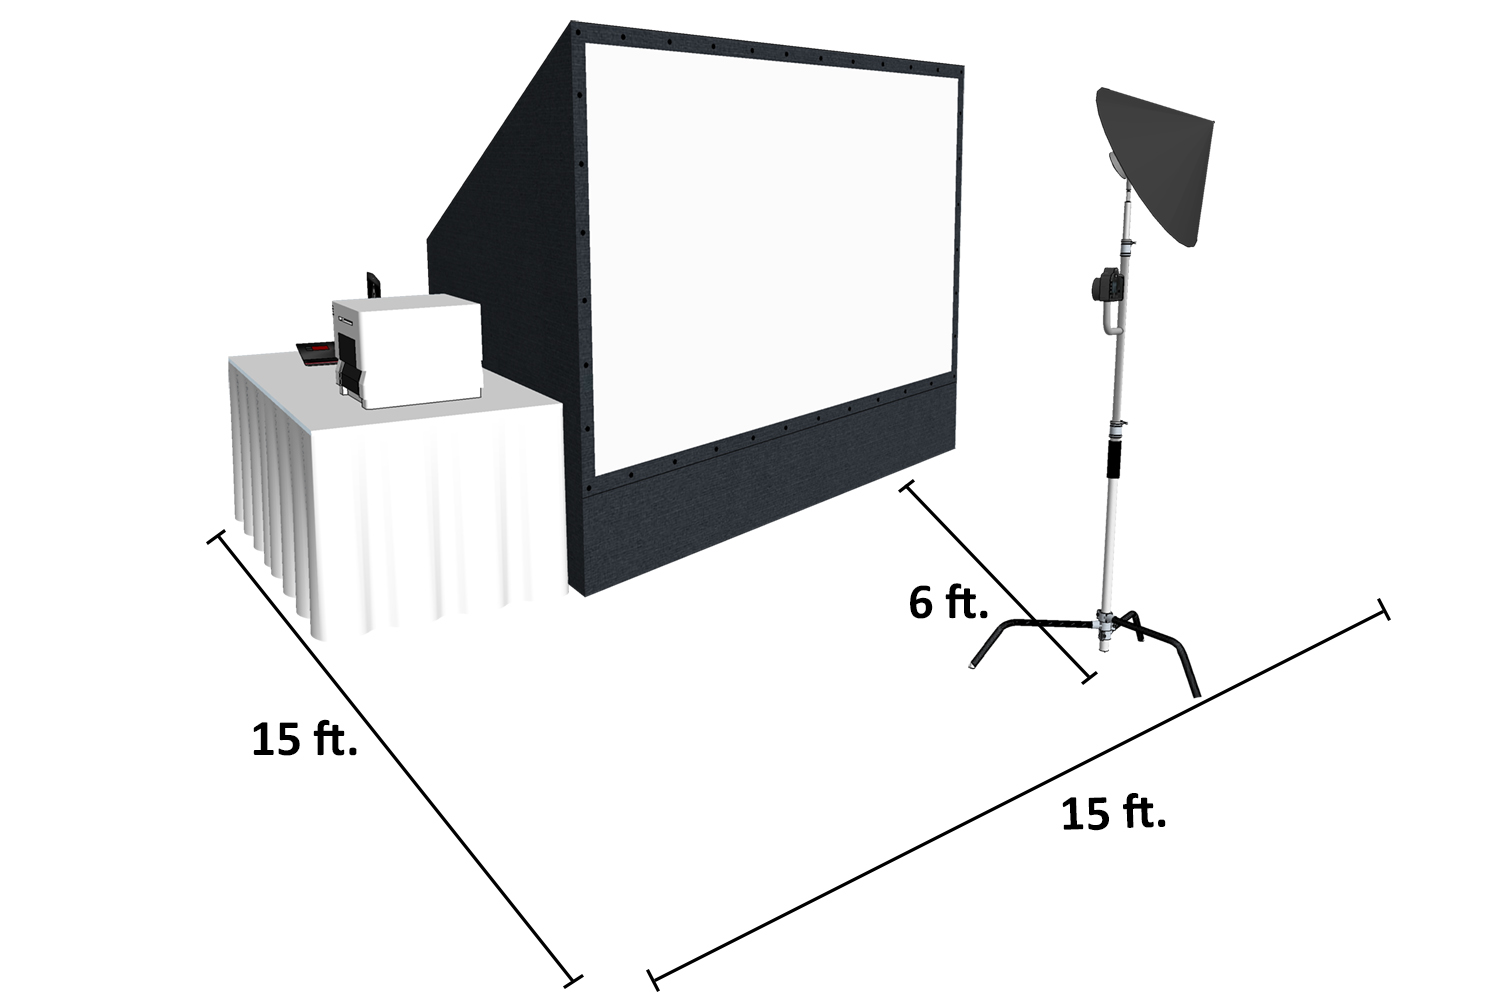 Small G Wall With Dimensions.jpg